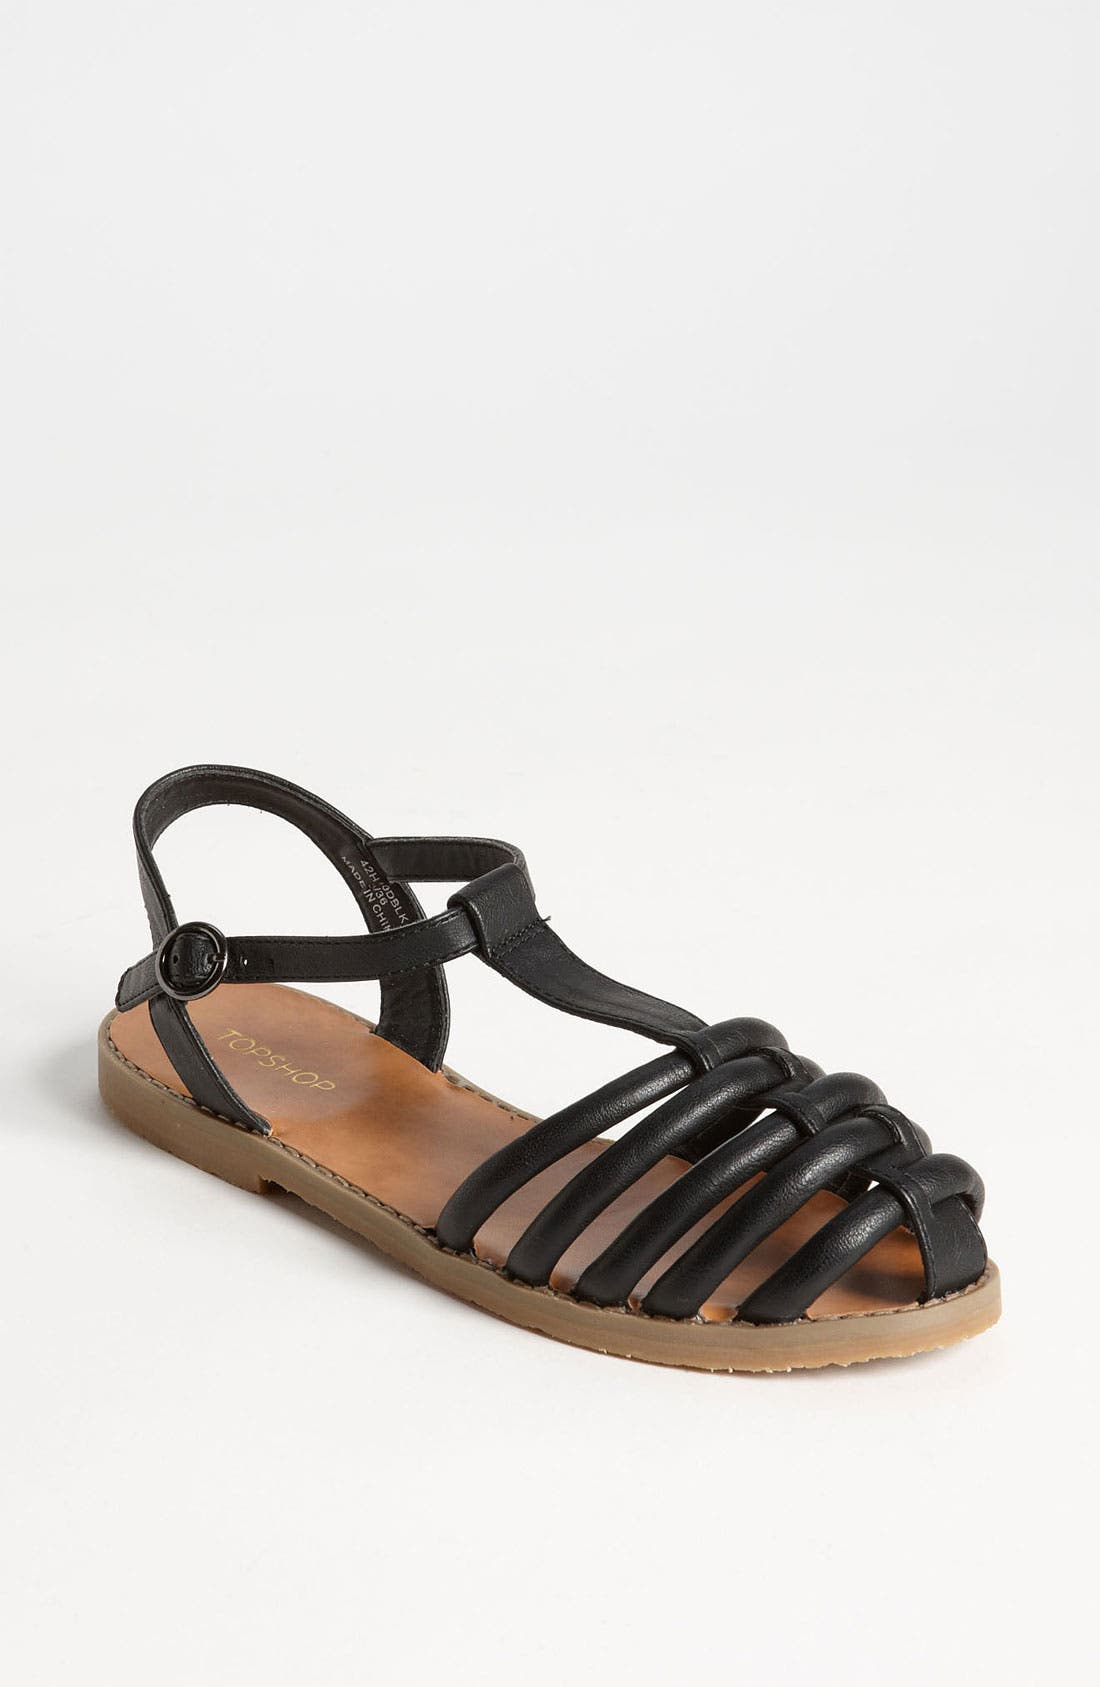 Main Image - Topshop 'Hampi' Caged Toe Fisherman Sandal